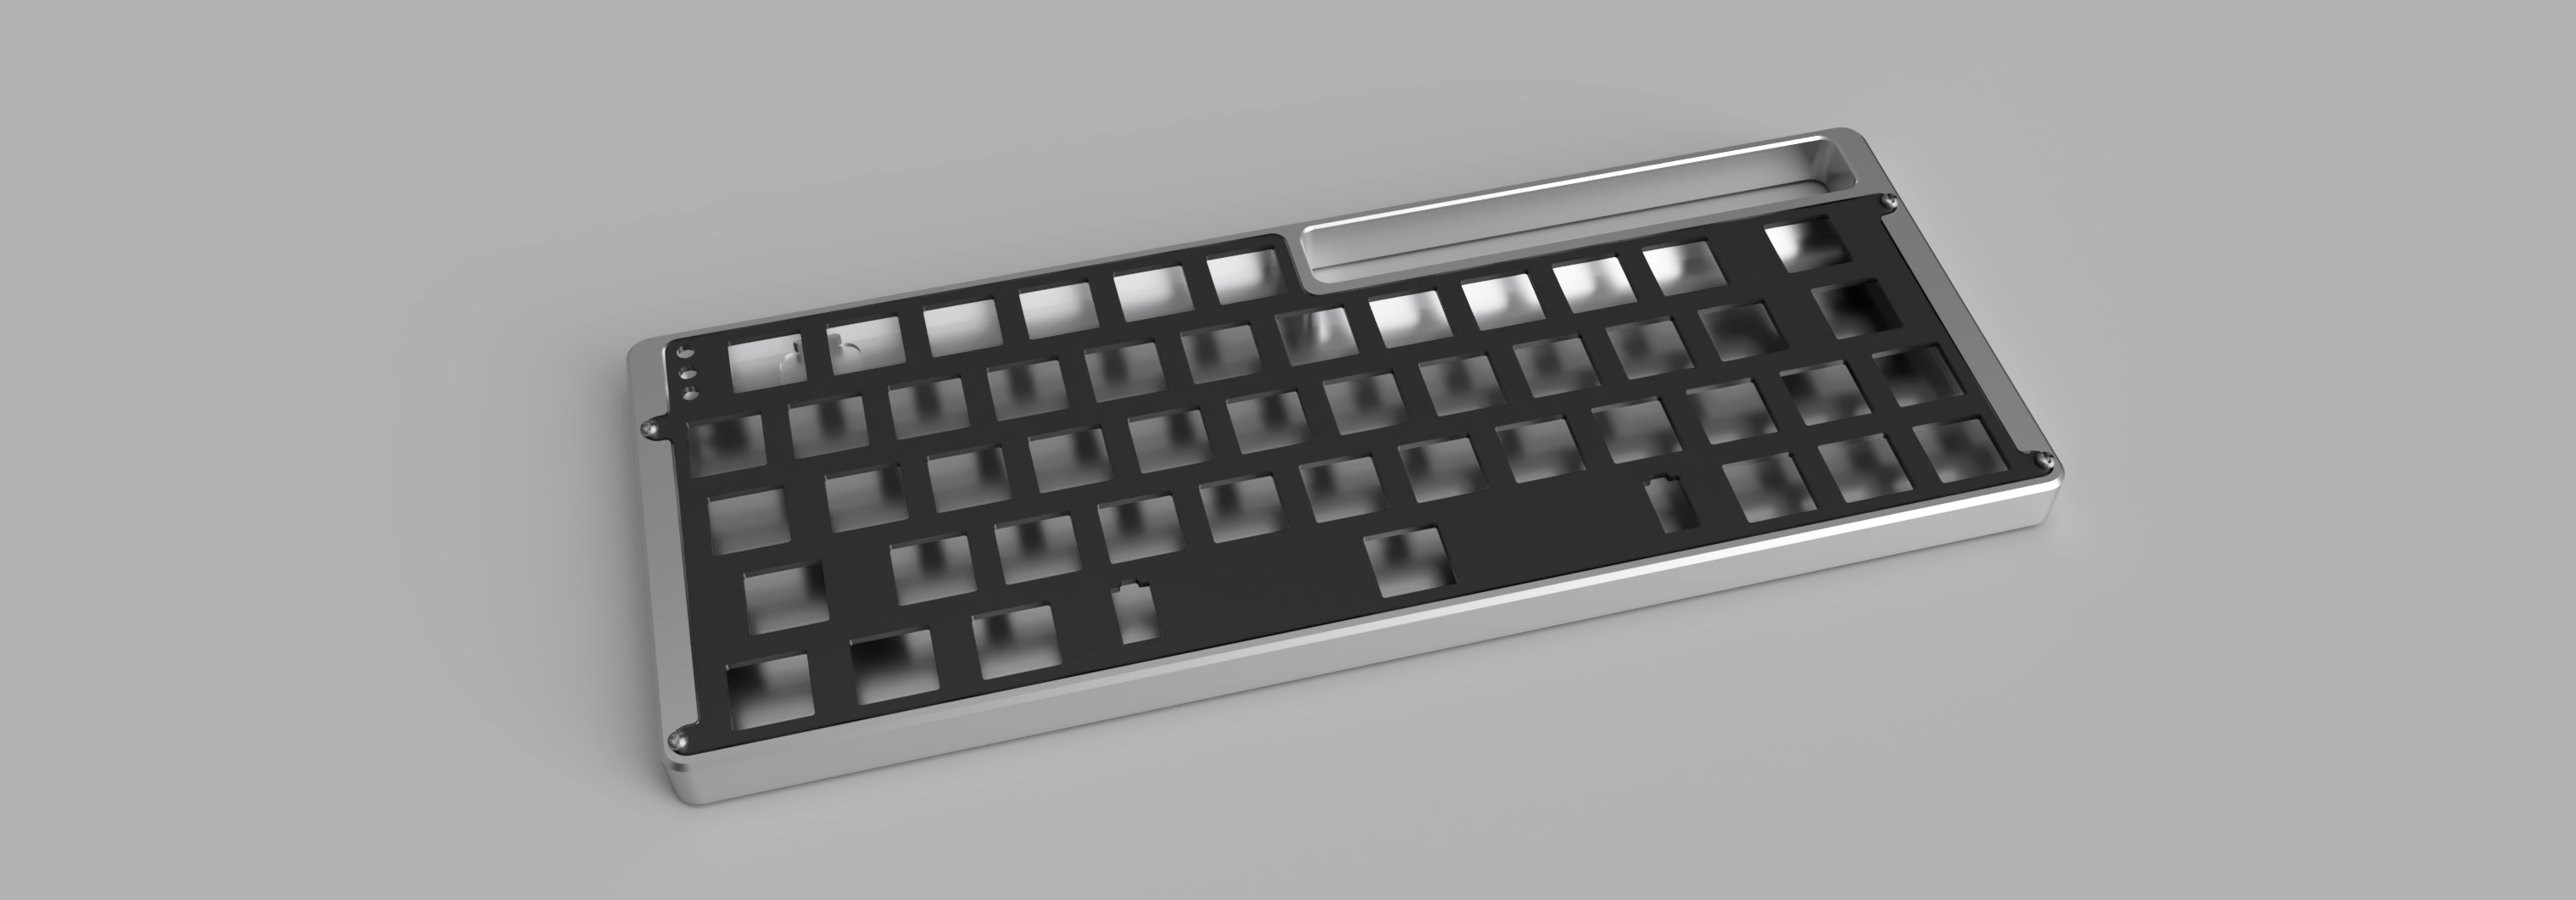 Render of V4N4G0N R3 case in raw aluminum with a carbon fiber plate